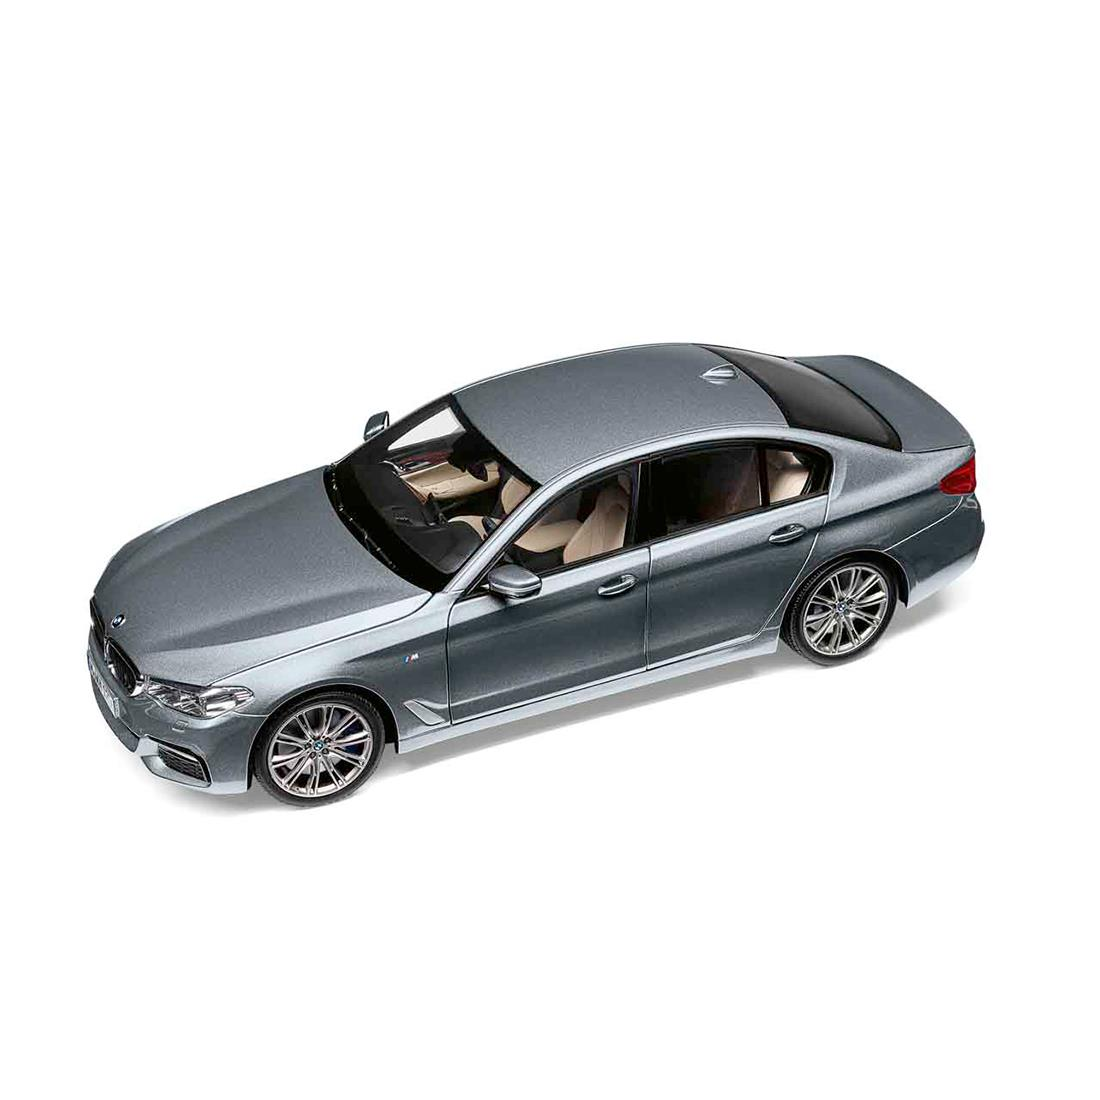 BMW MINIATURE 5 SERIES (G30) 1:18